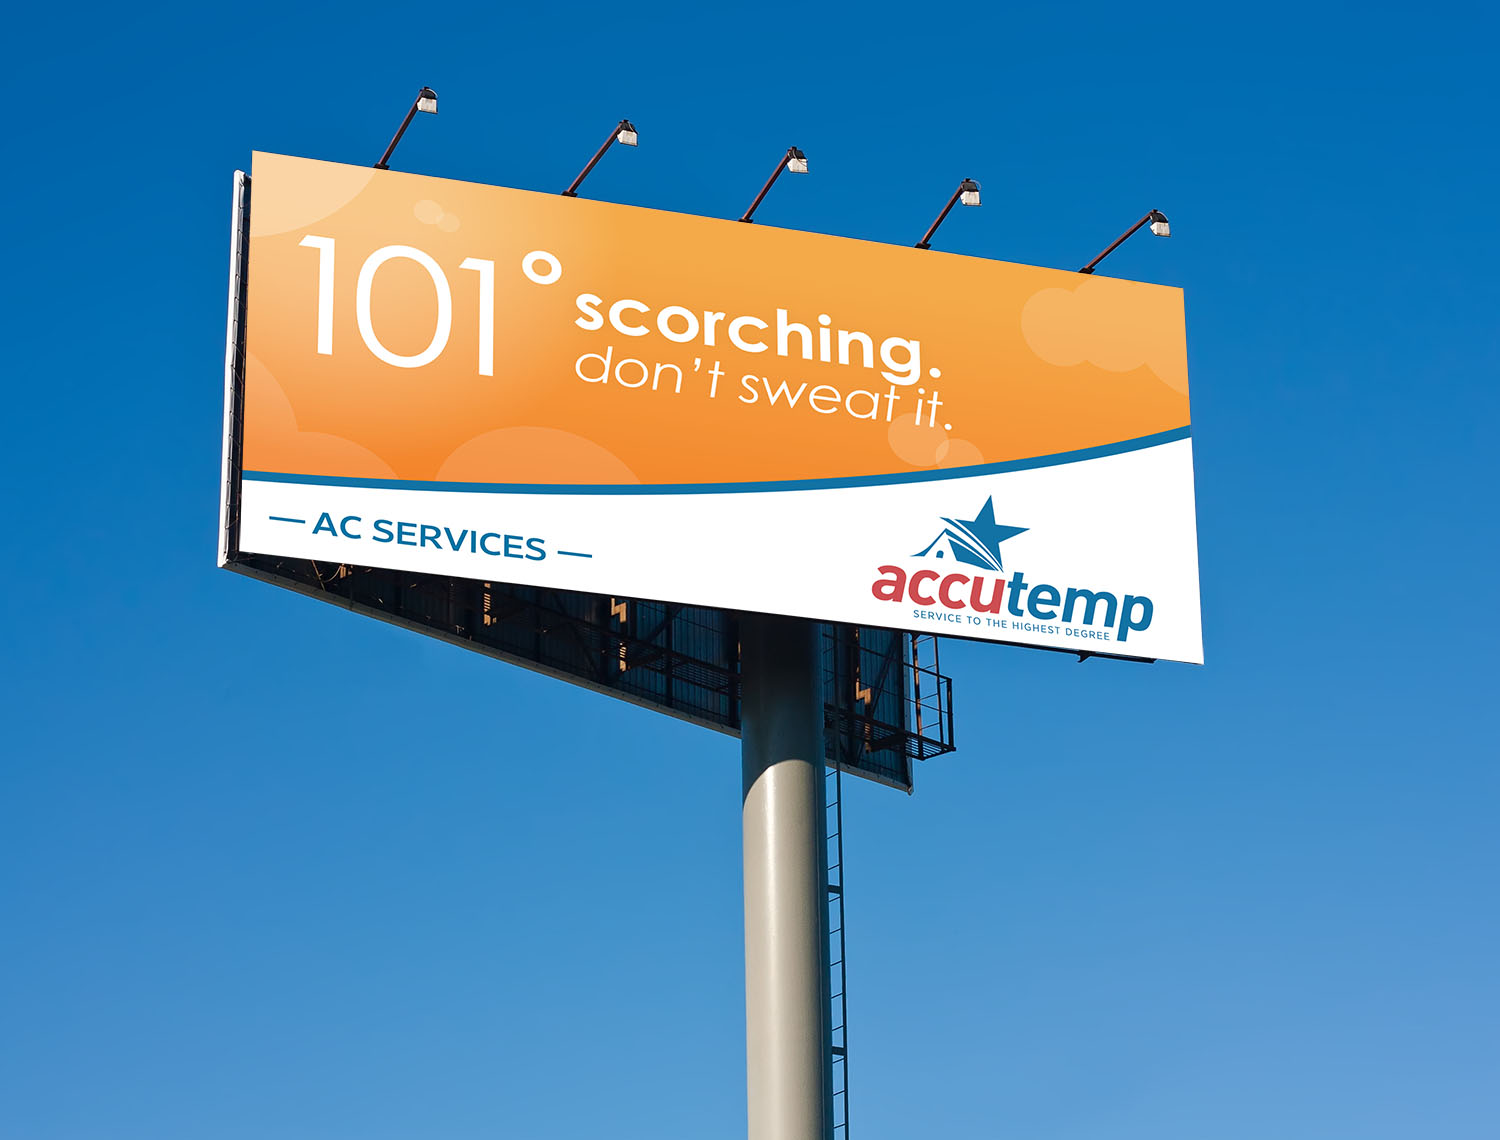 AccuTemp | Billboard: 101 and Scorching